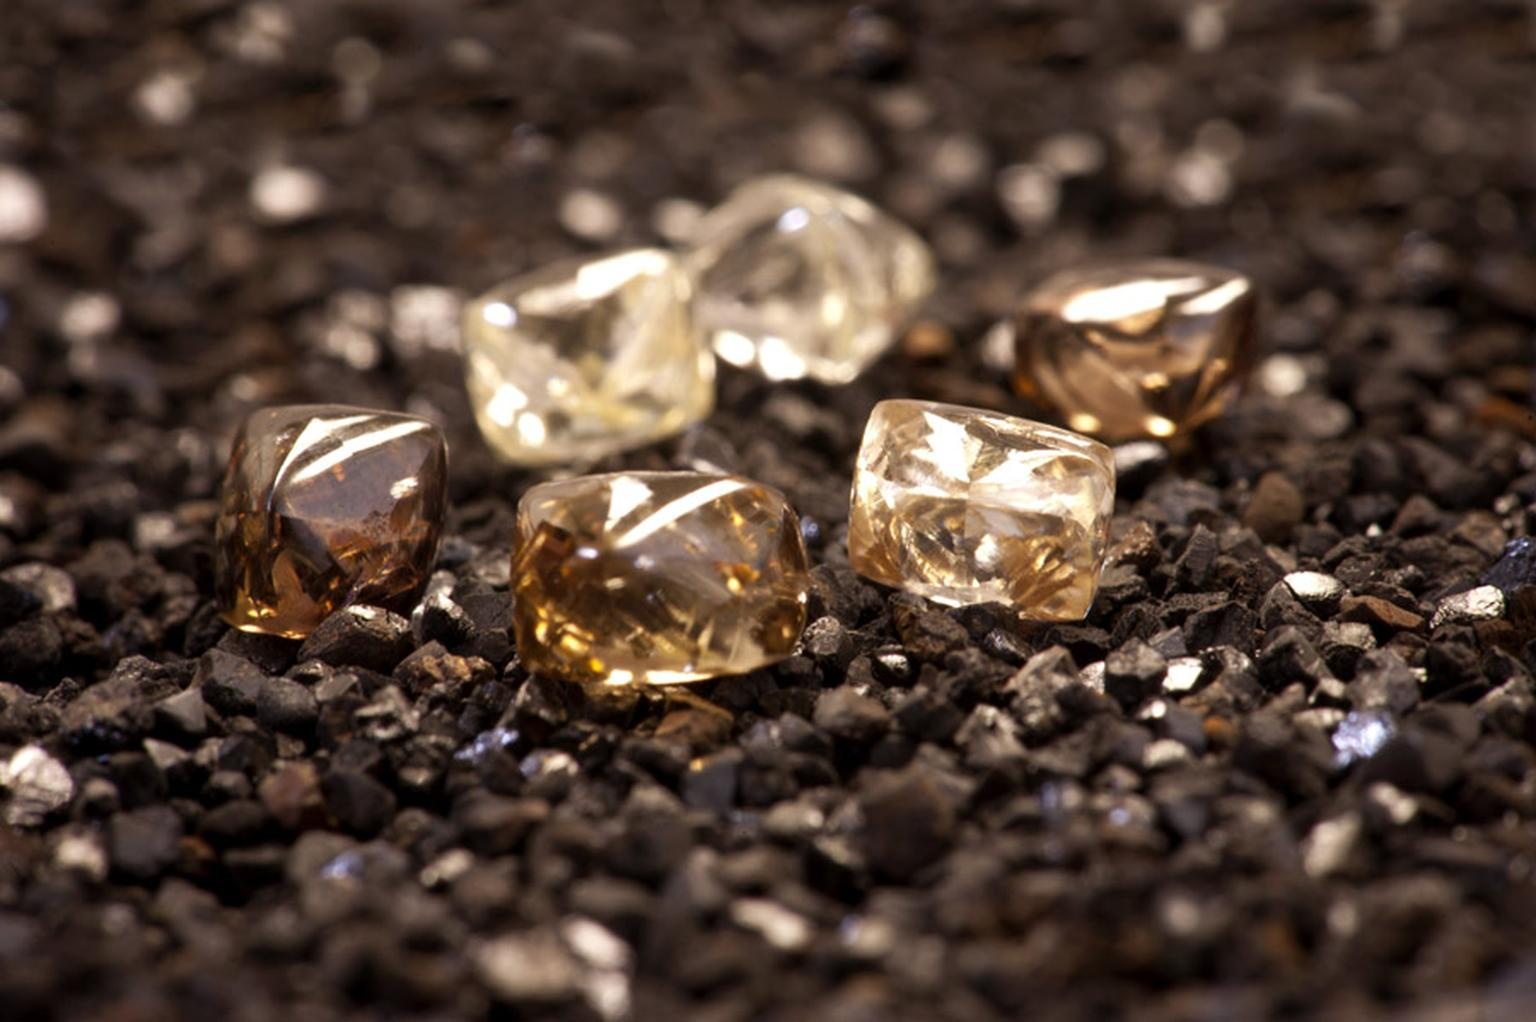 First-diamond-samples-from-the-Bunder-project-located-in-the-Bundelkhand-region-of-Madhya-Pradesh-India--NXPowerLite.jpg